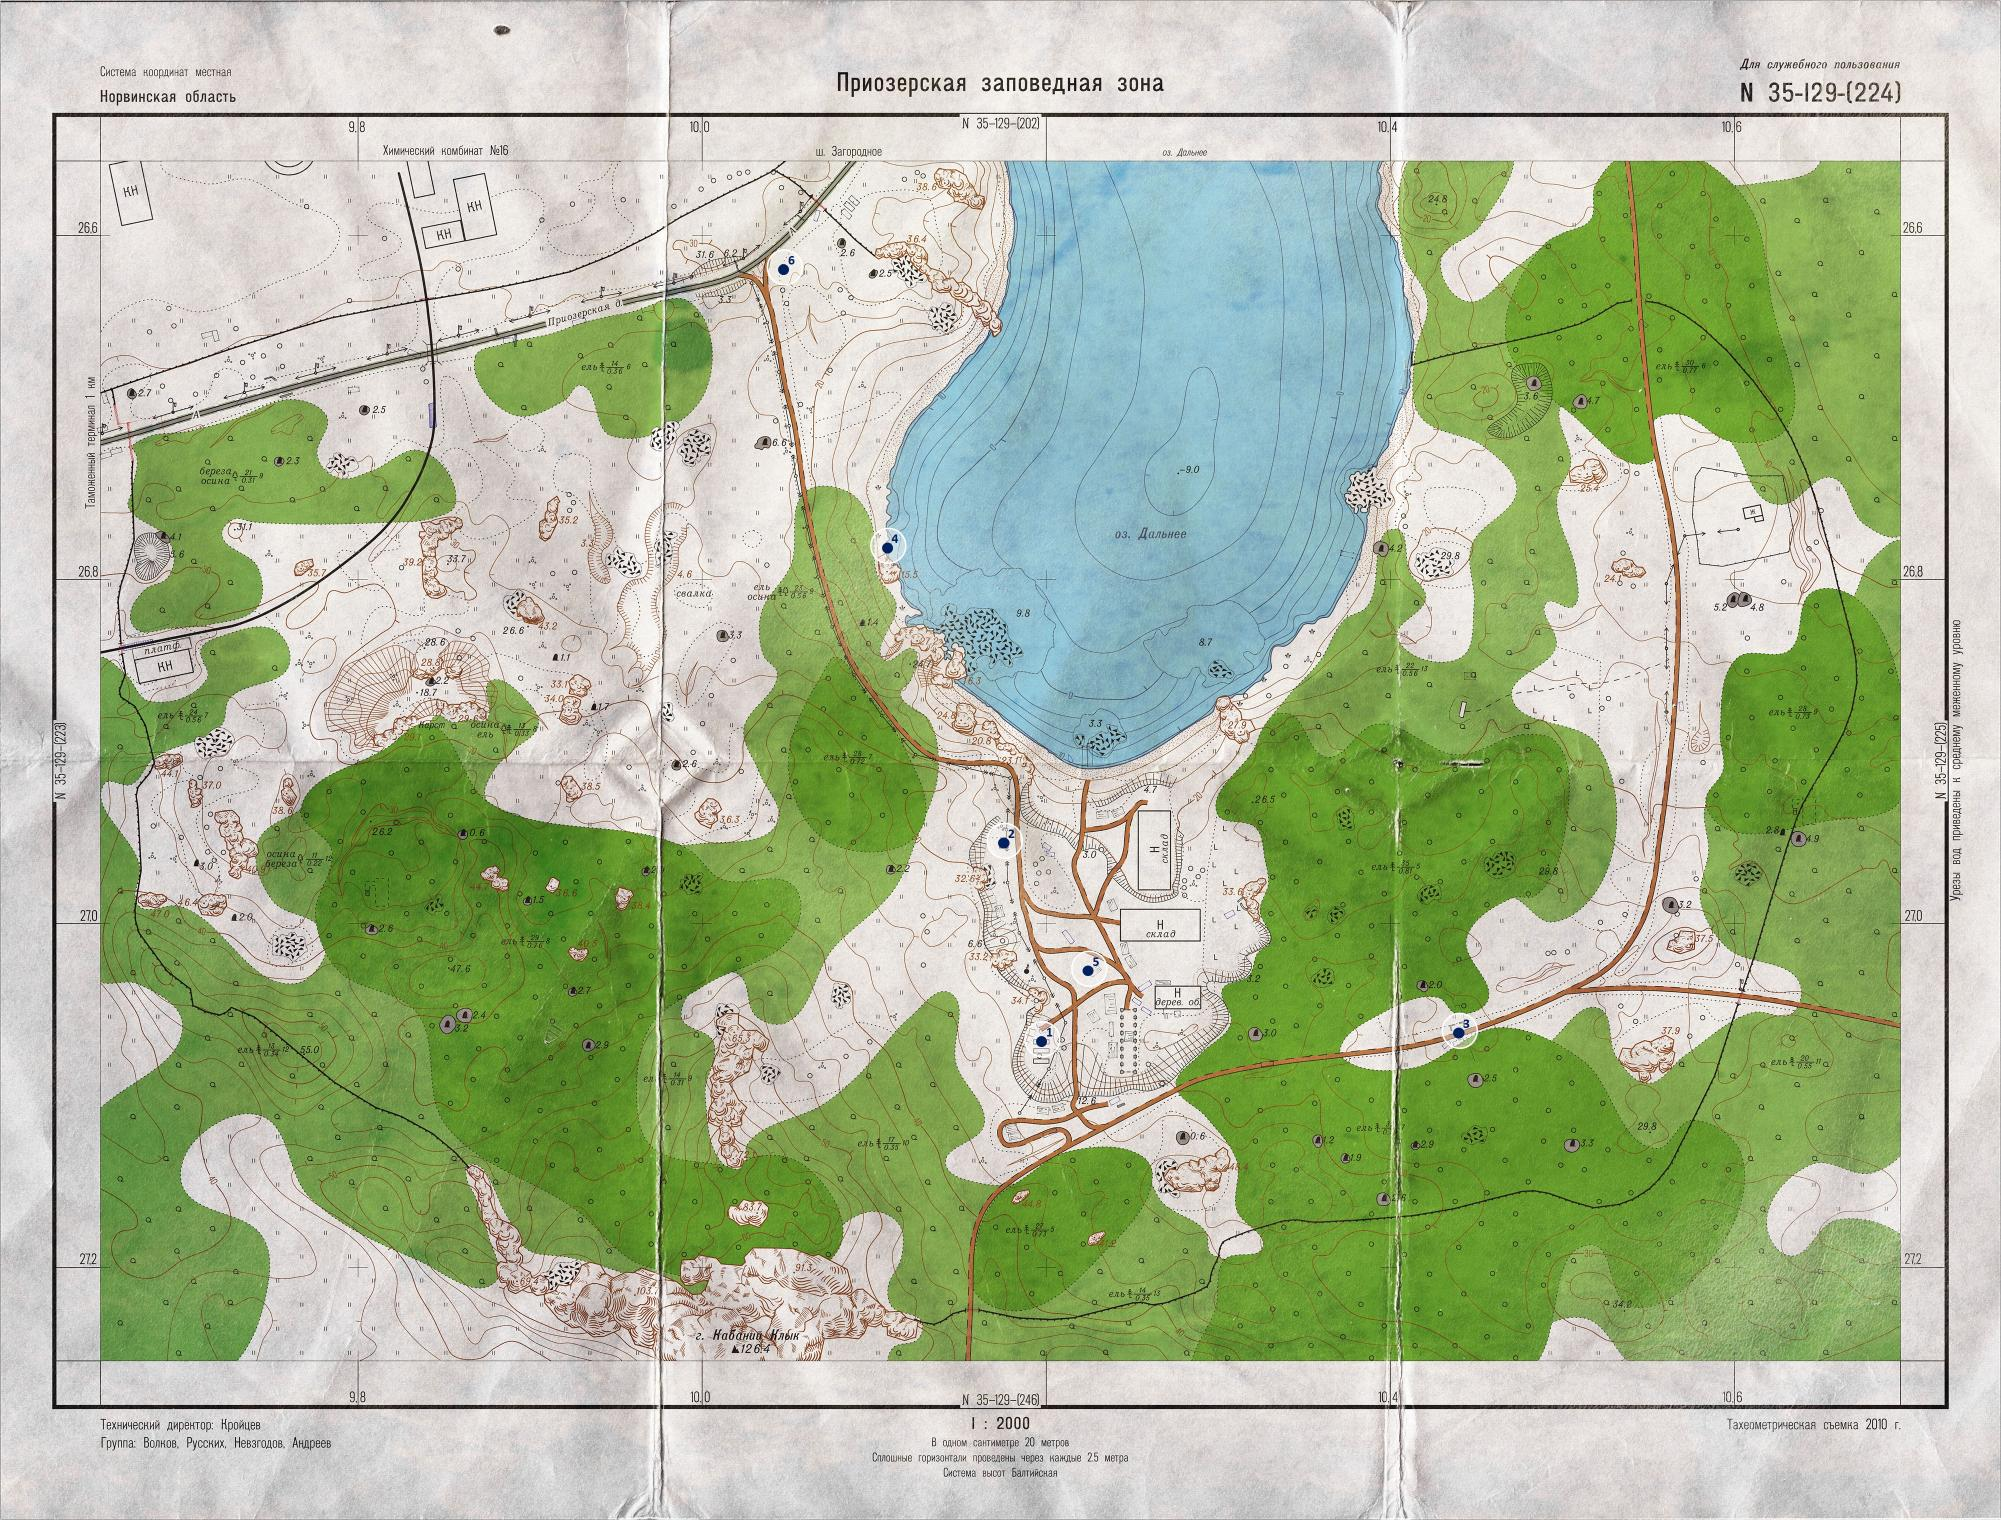 Key Spawn map of Woods